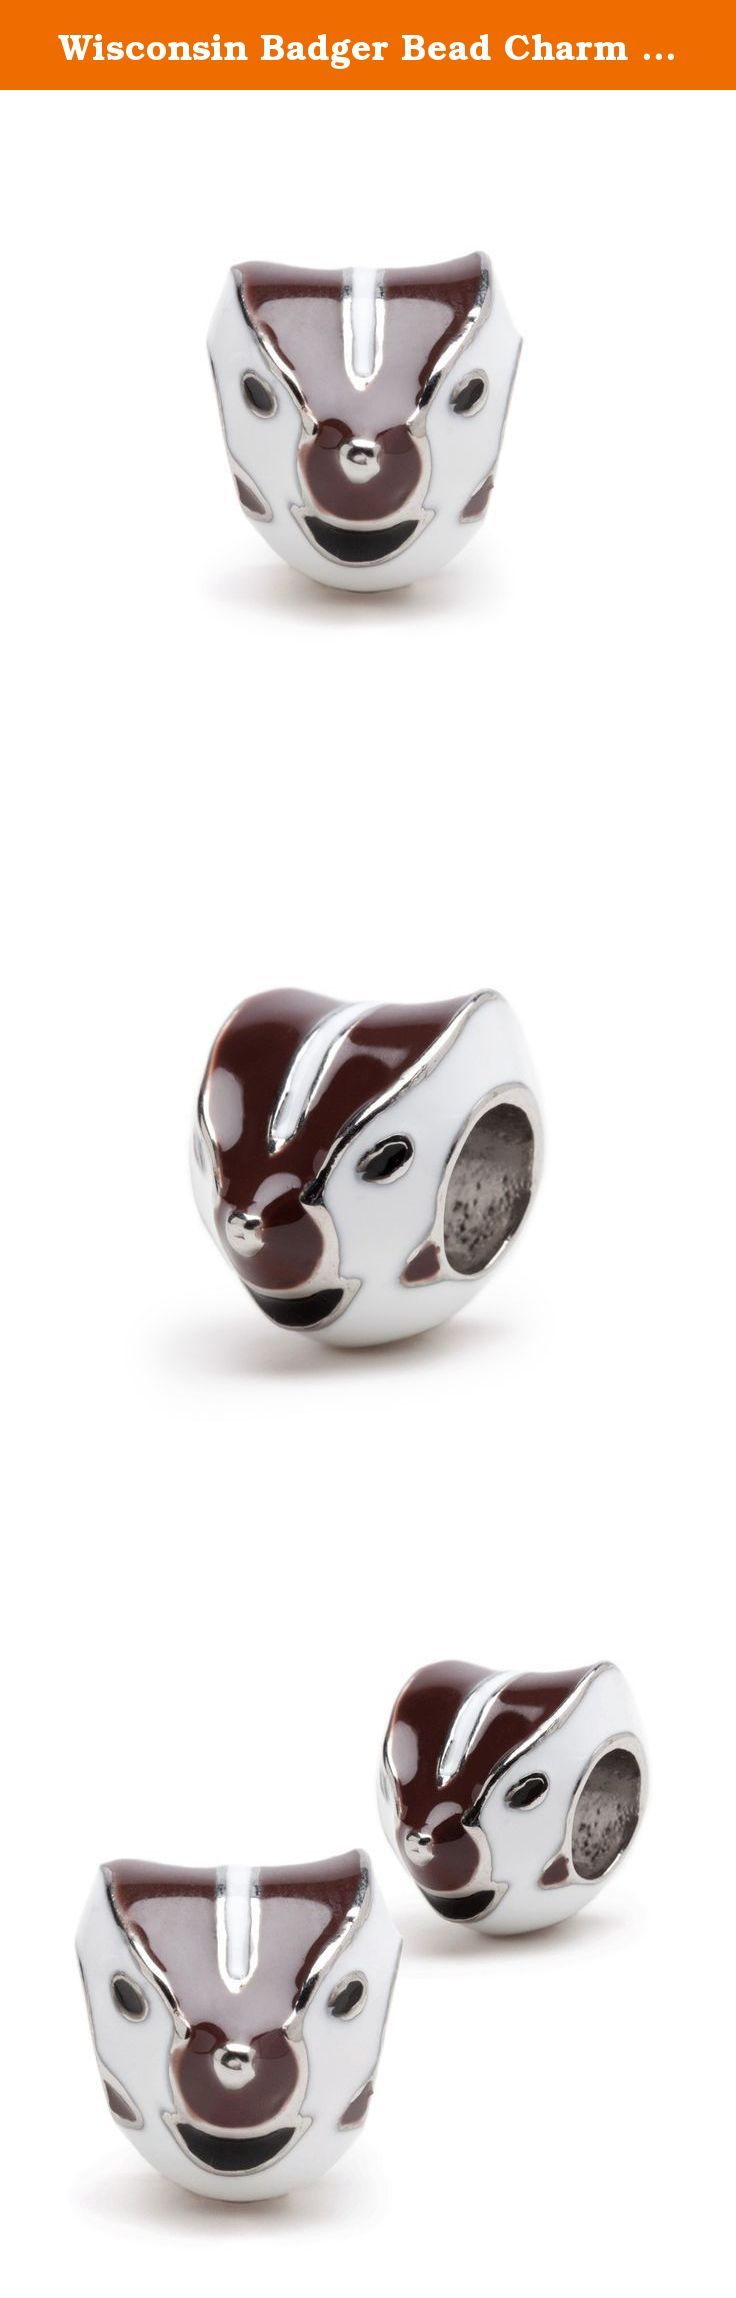 Wisconsin Badger Bead Charm Set of Two - Stainless Steel. Gear up for the game! This bead charm set includes two stainless steel Wisconsin Badgers bead charms that will not rust or tarnish. Lifetime guarantee. Fits most charm bracelets including Pandora, Chamilia, and Stone Armory or can be worn on a necklace. Officially licensed by University of Wisconsin. Ships with in 24 business hours from Cleveland, OH.